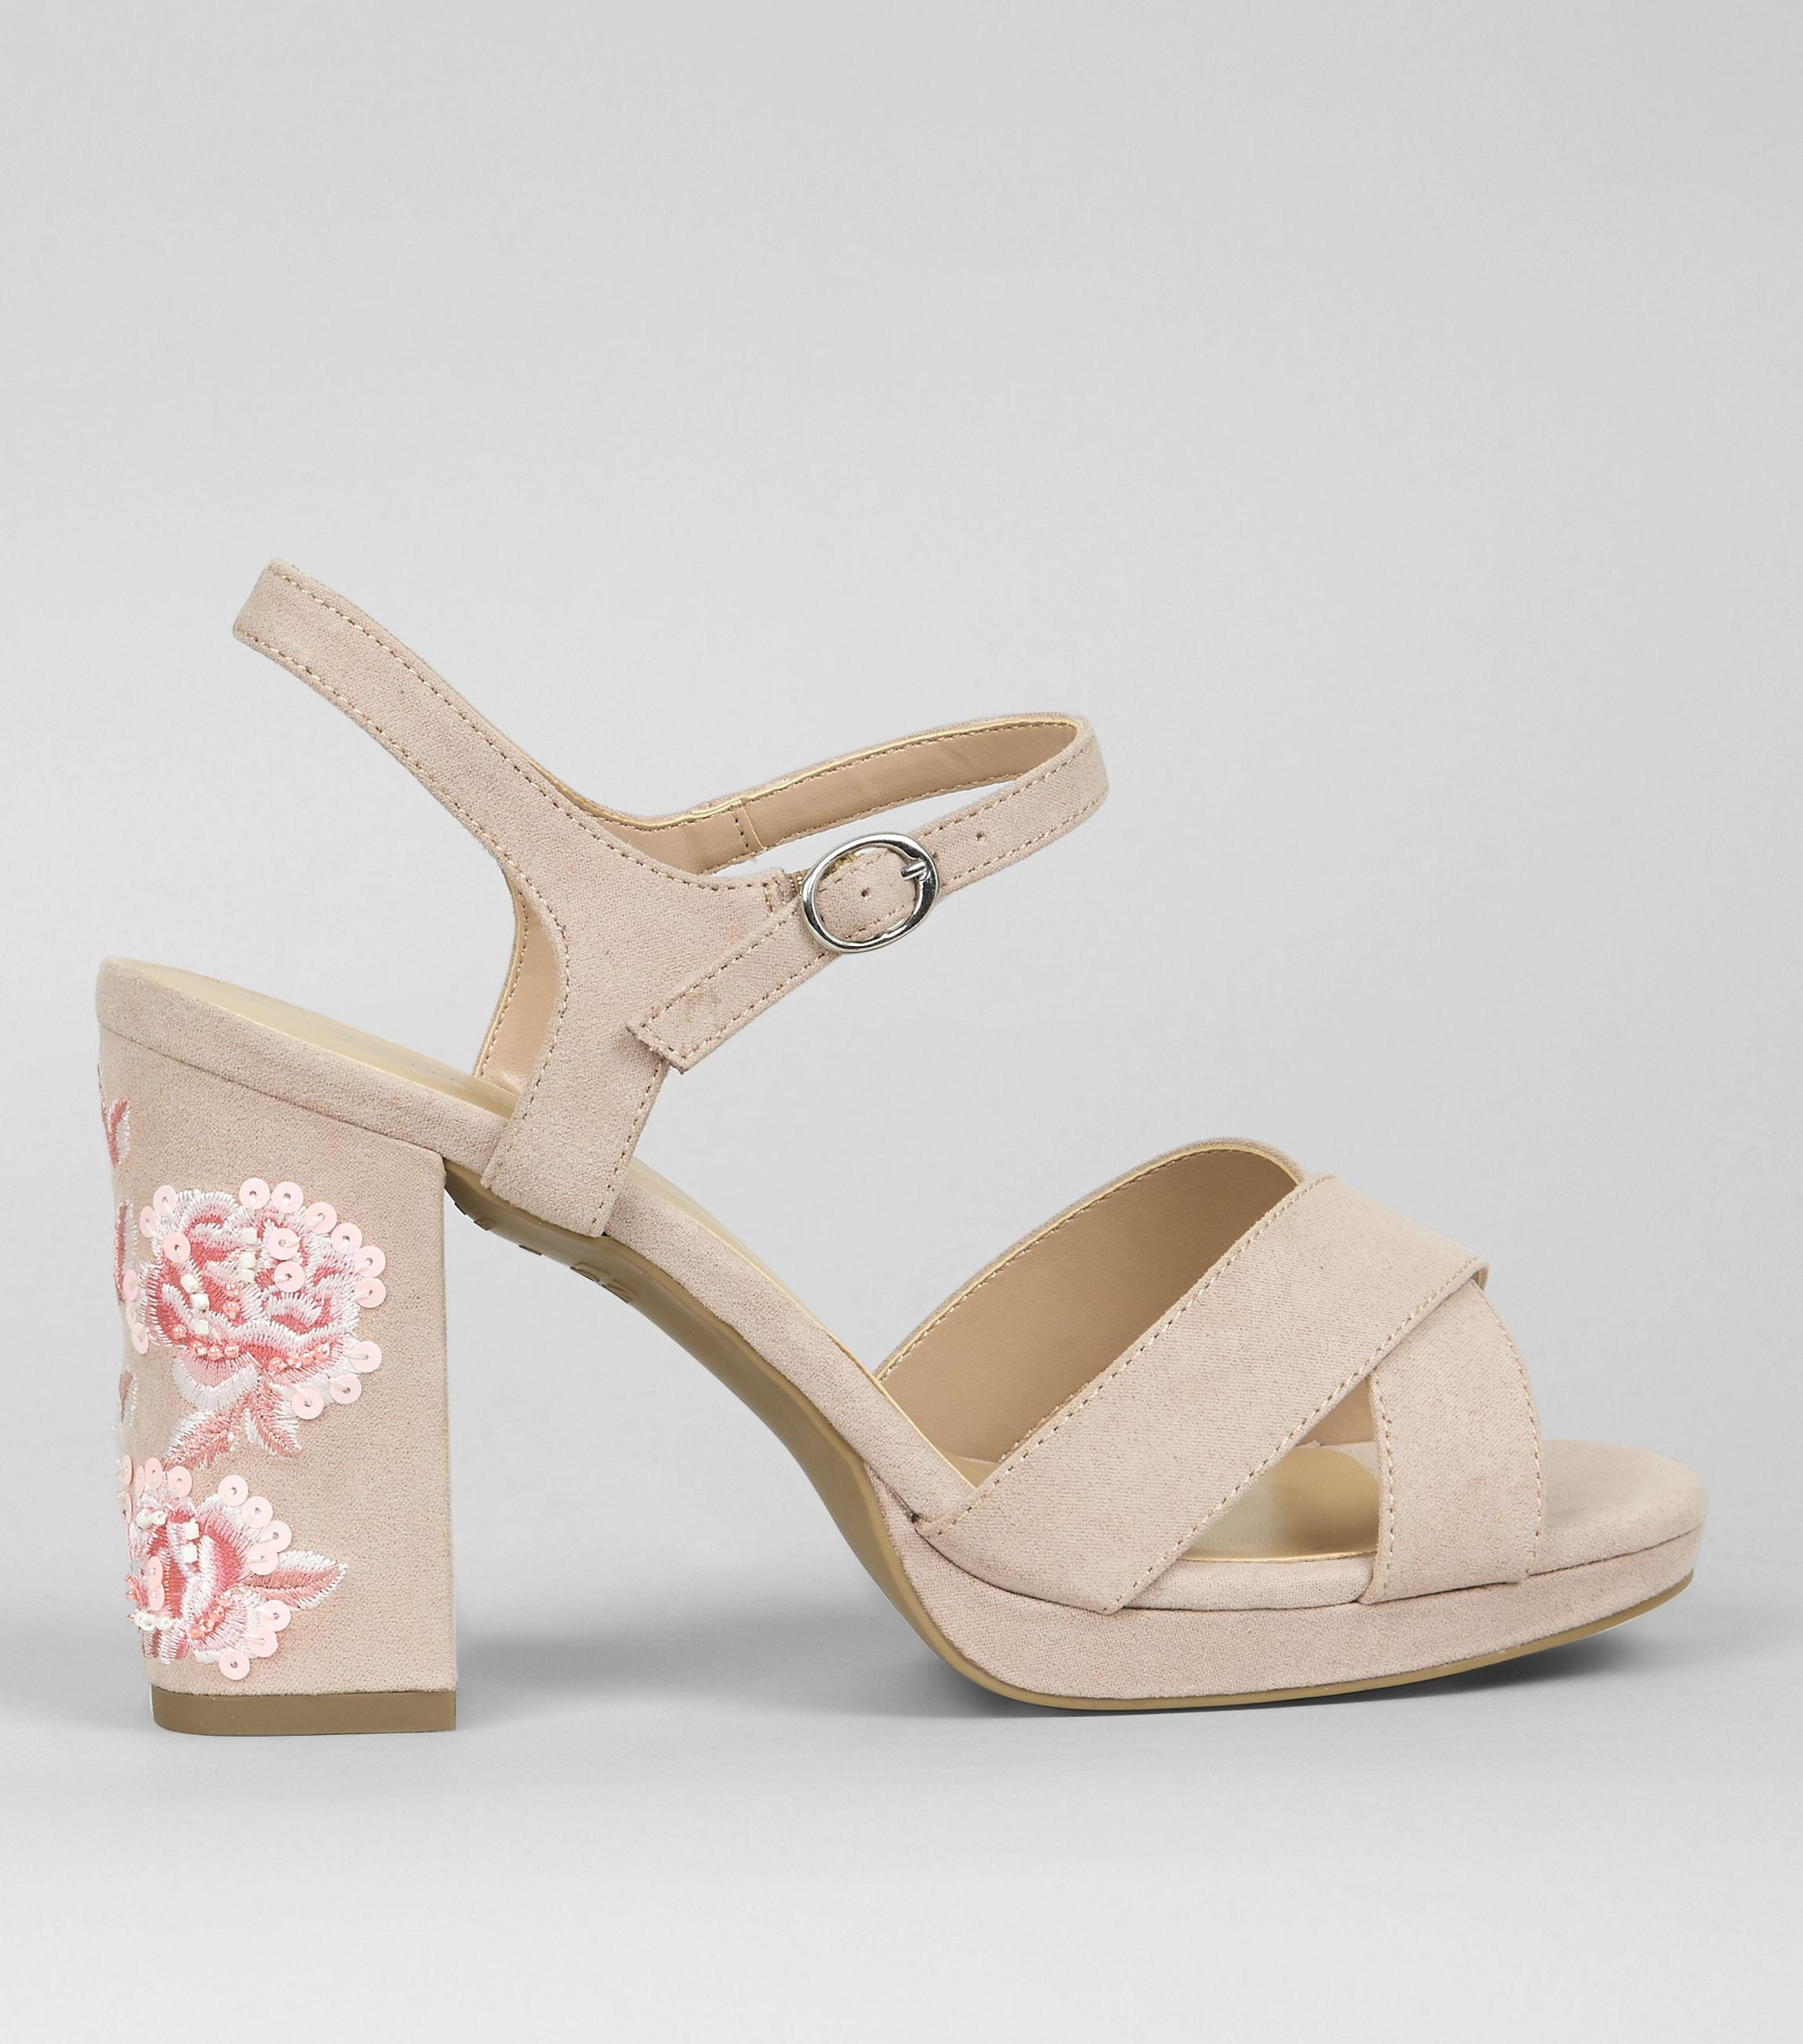 3407ce423ee New Look Wide Fit Nude Pink Floral Embroidered Block Heels in ...